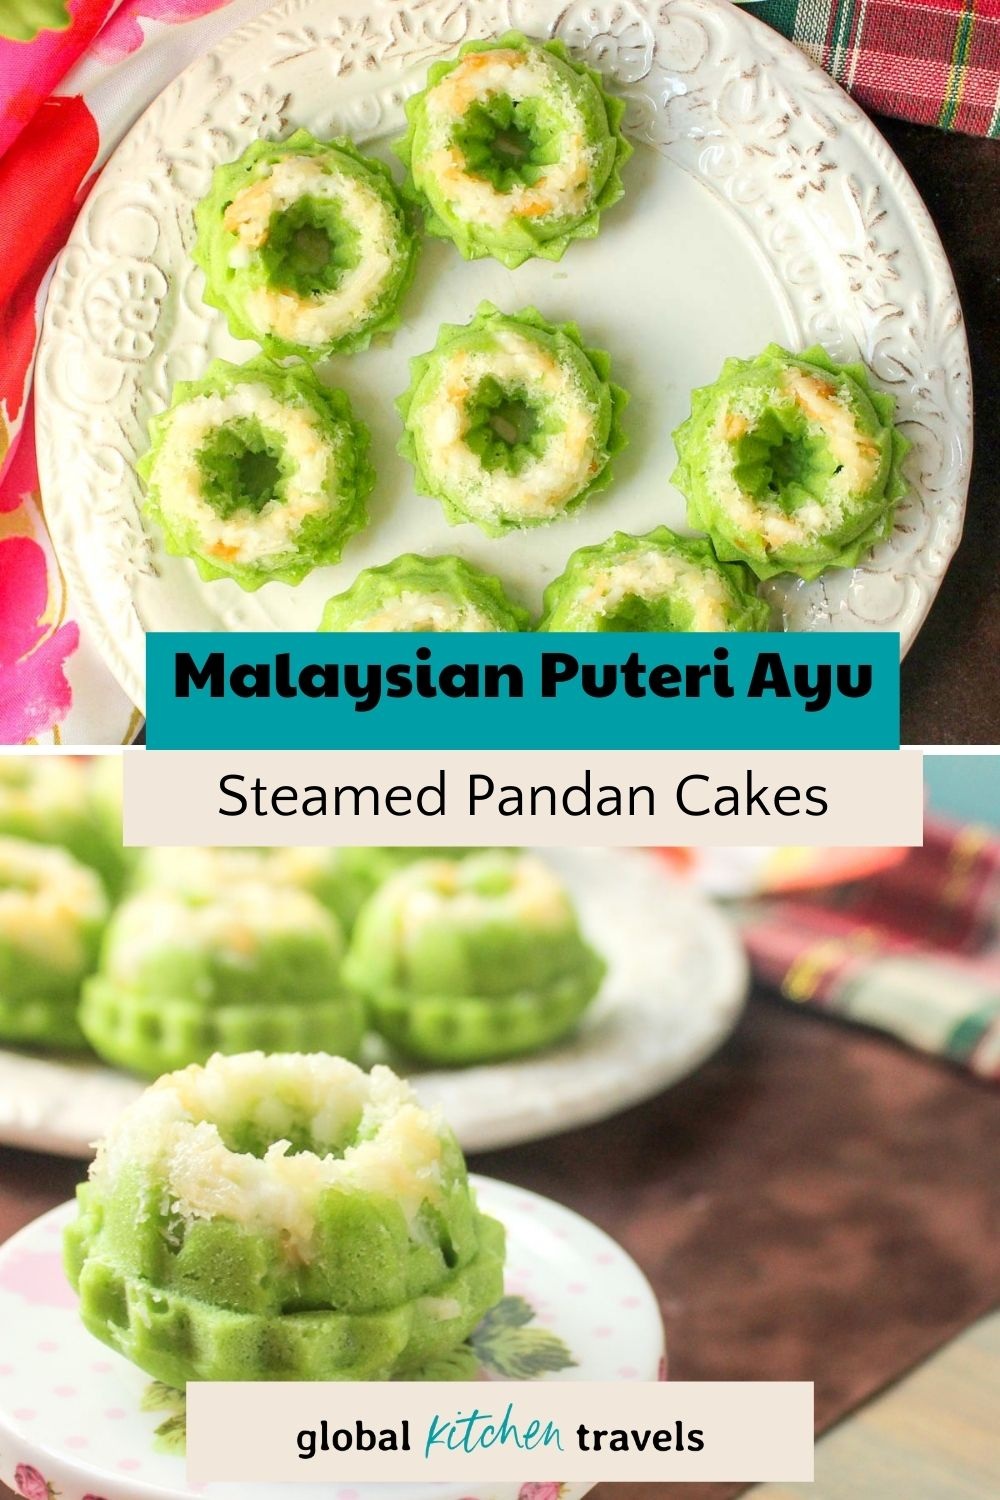 mini pandan sponge cakes topped with coconut with text